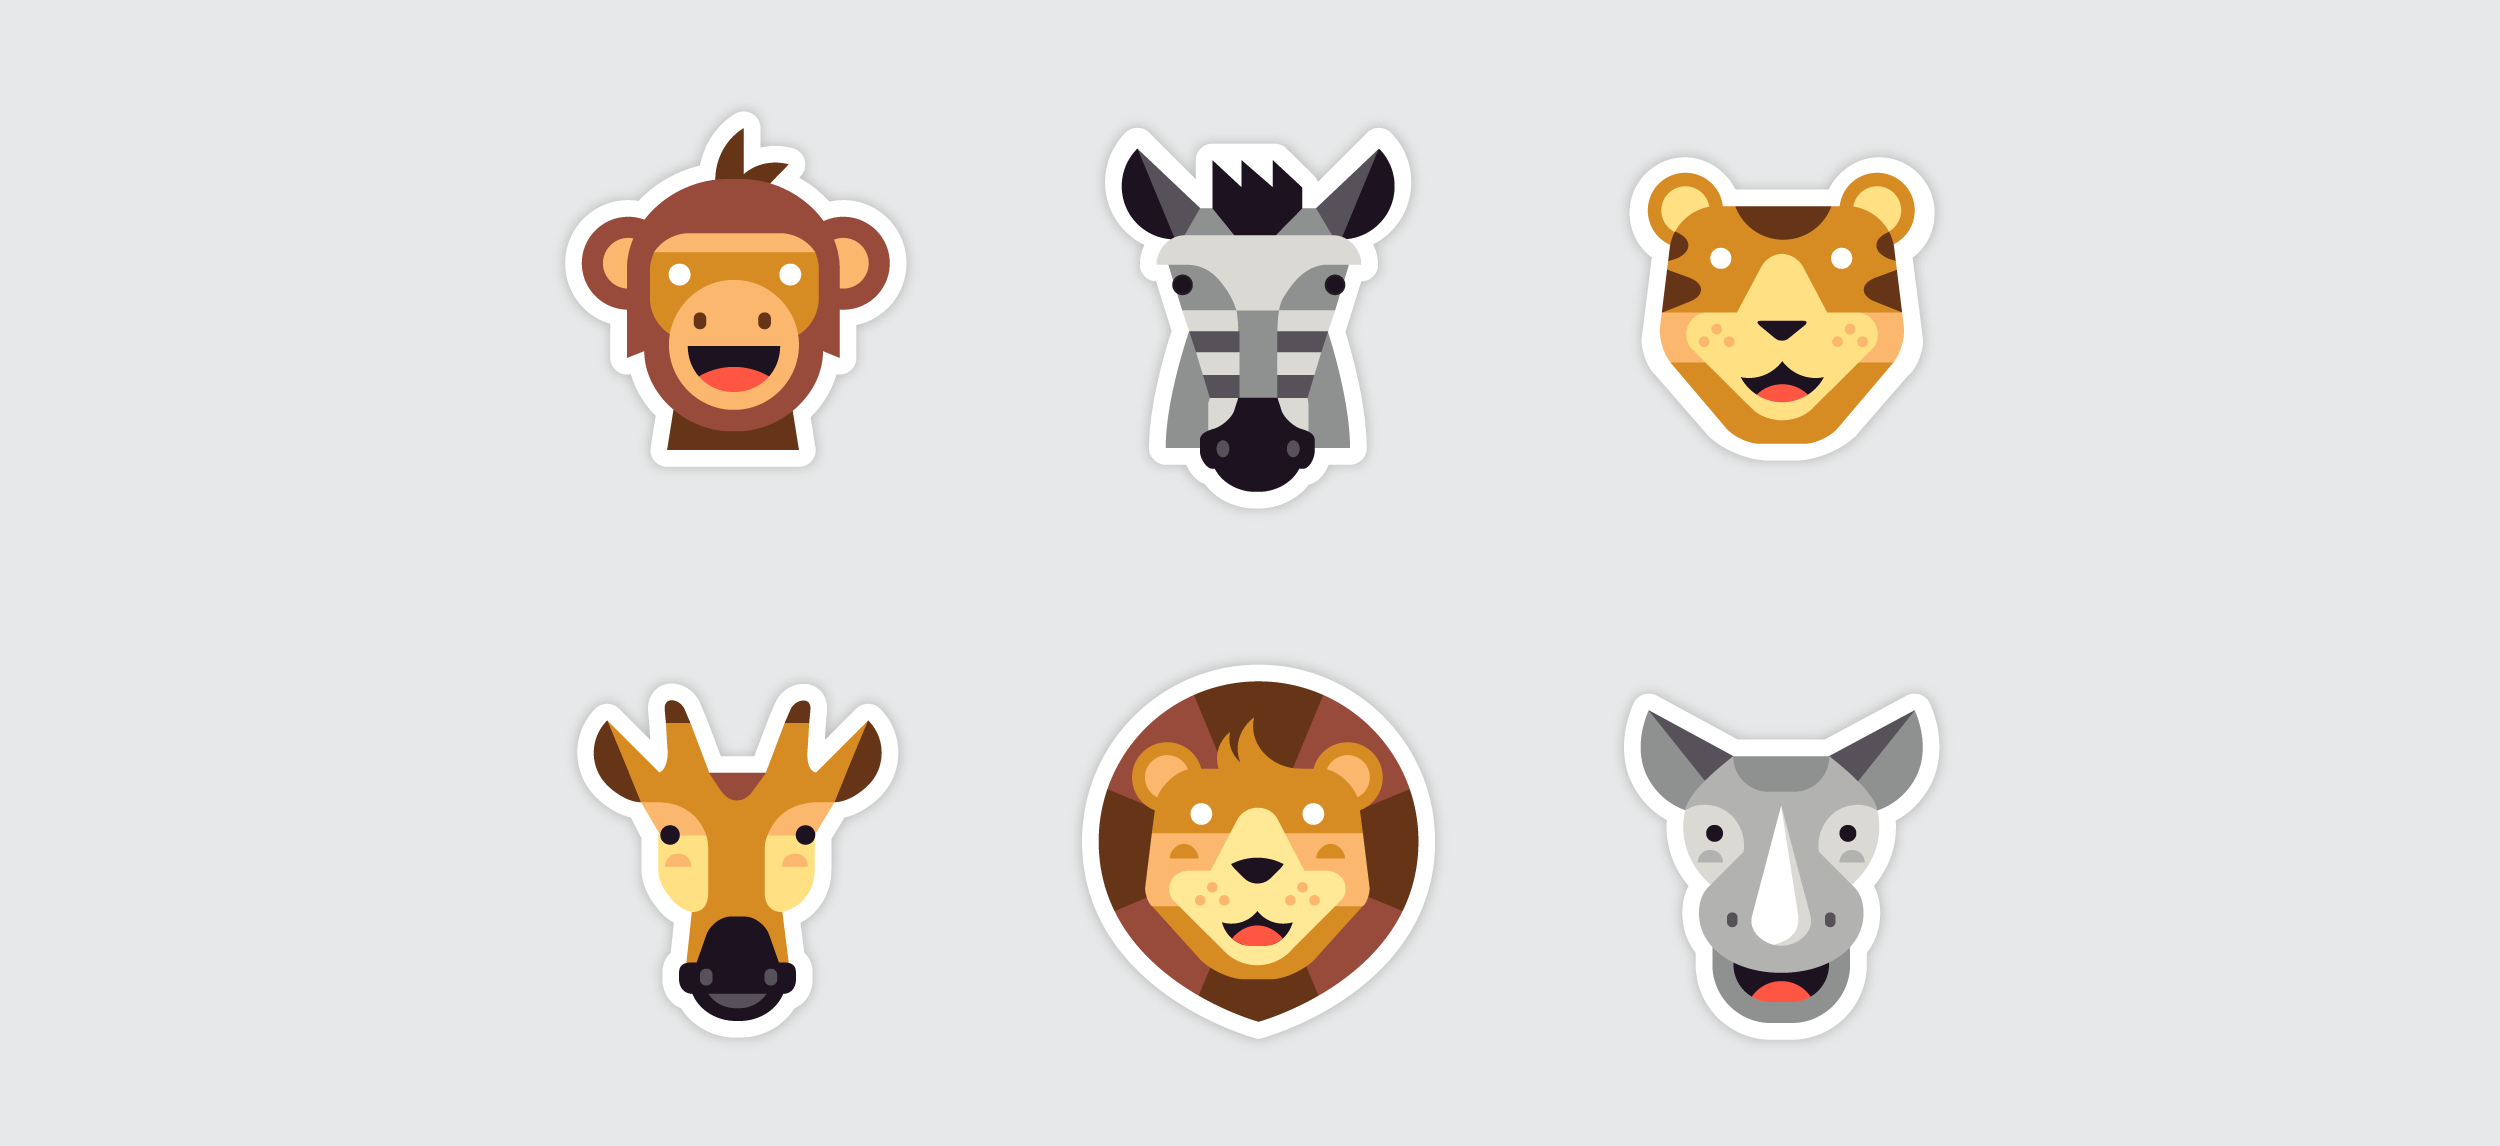 Kik Emoji Collections by Matt Anderson - Safari Animals